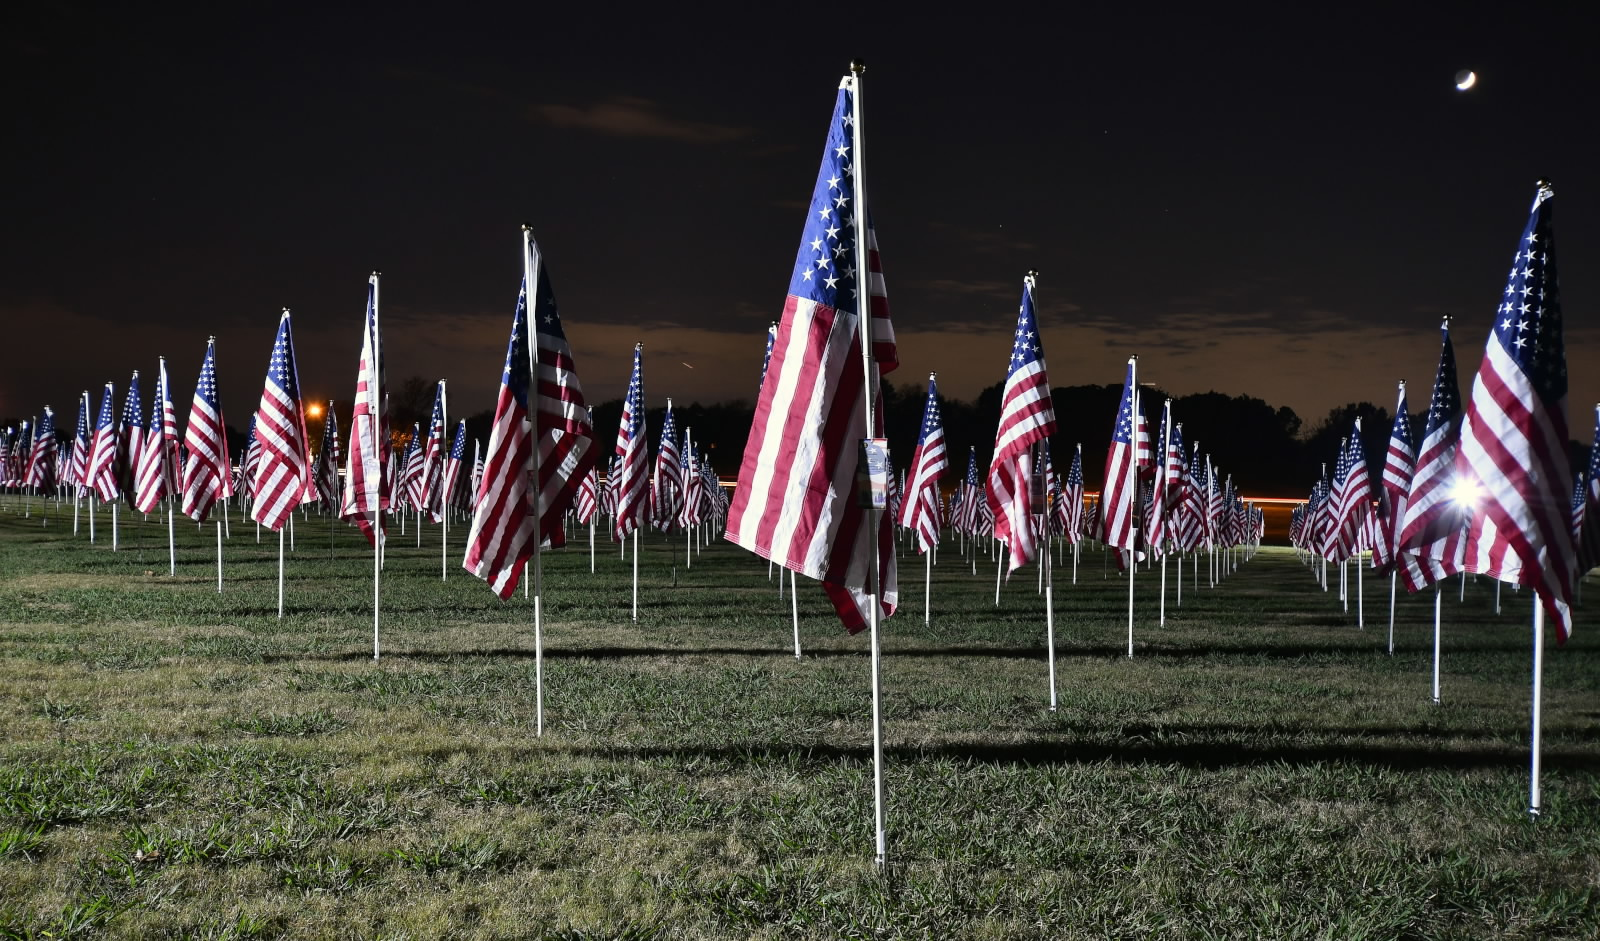 2018 Plano Flags of Honor Field